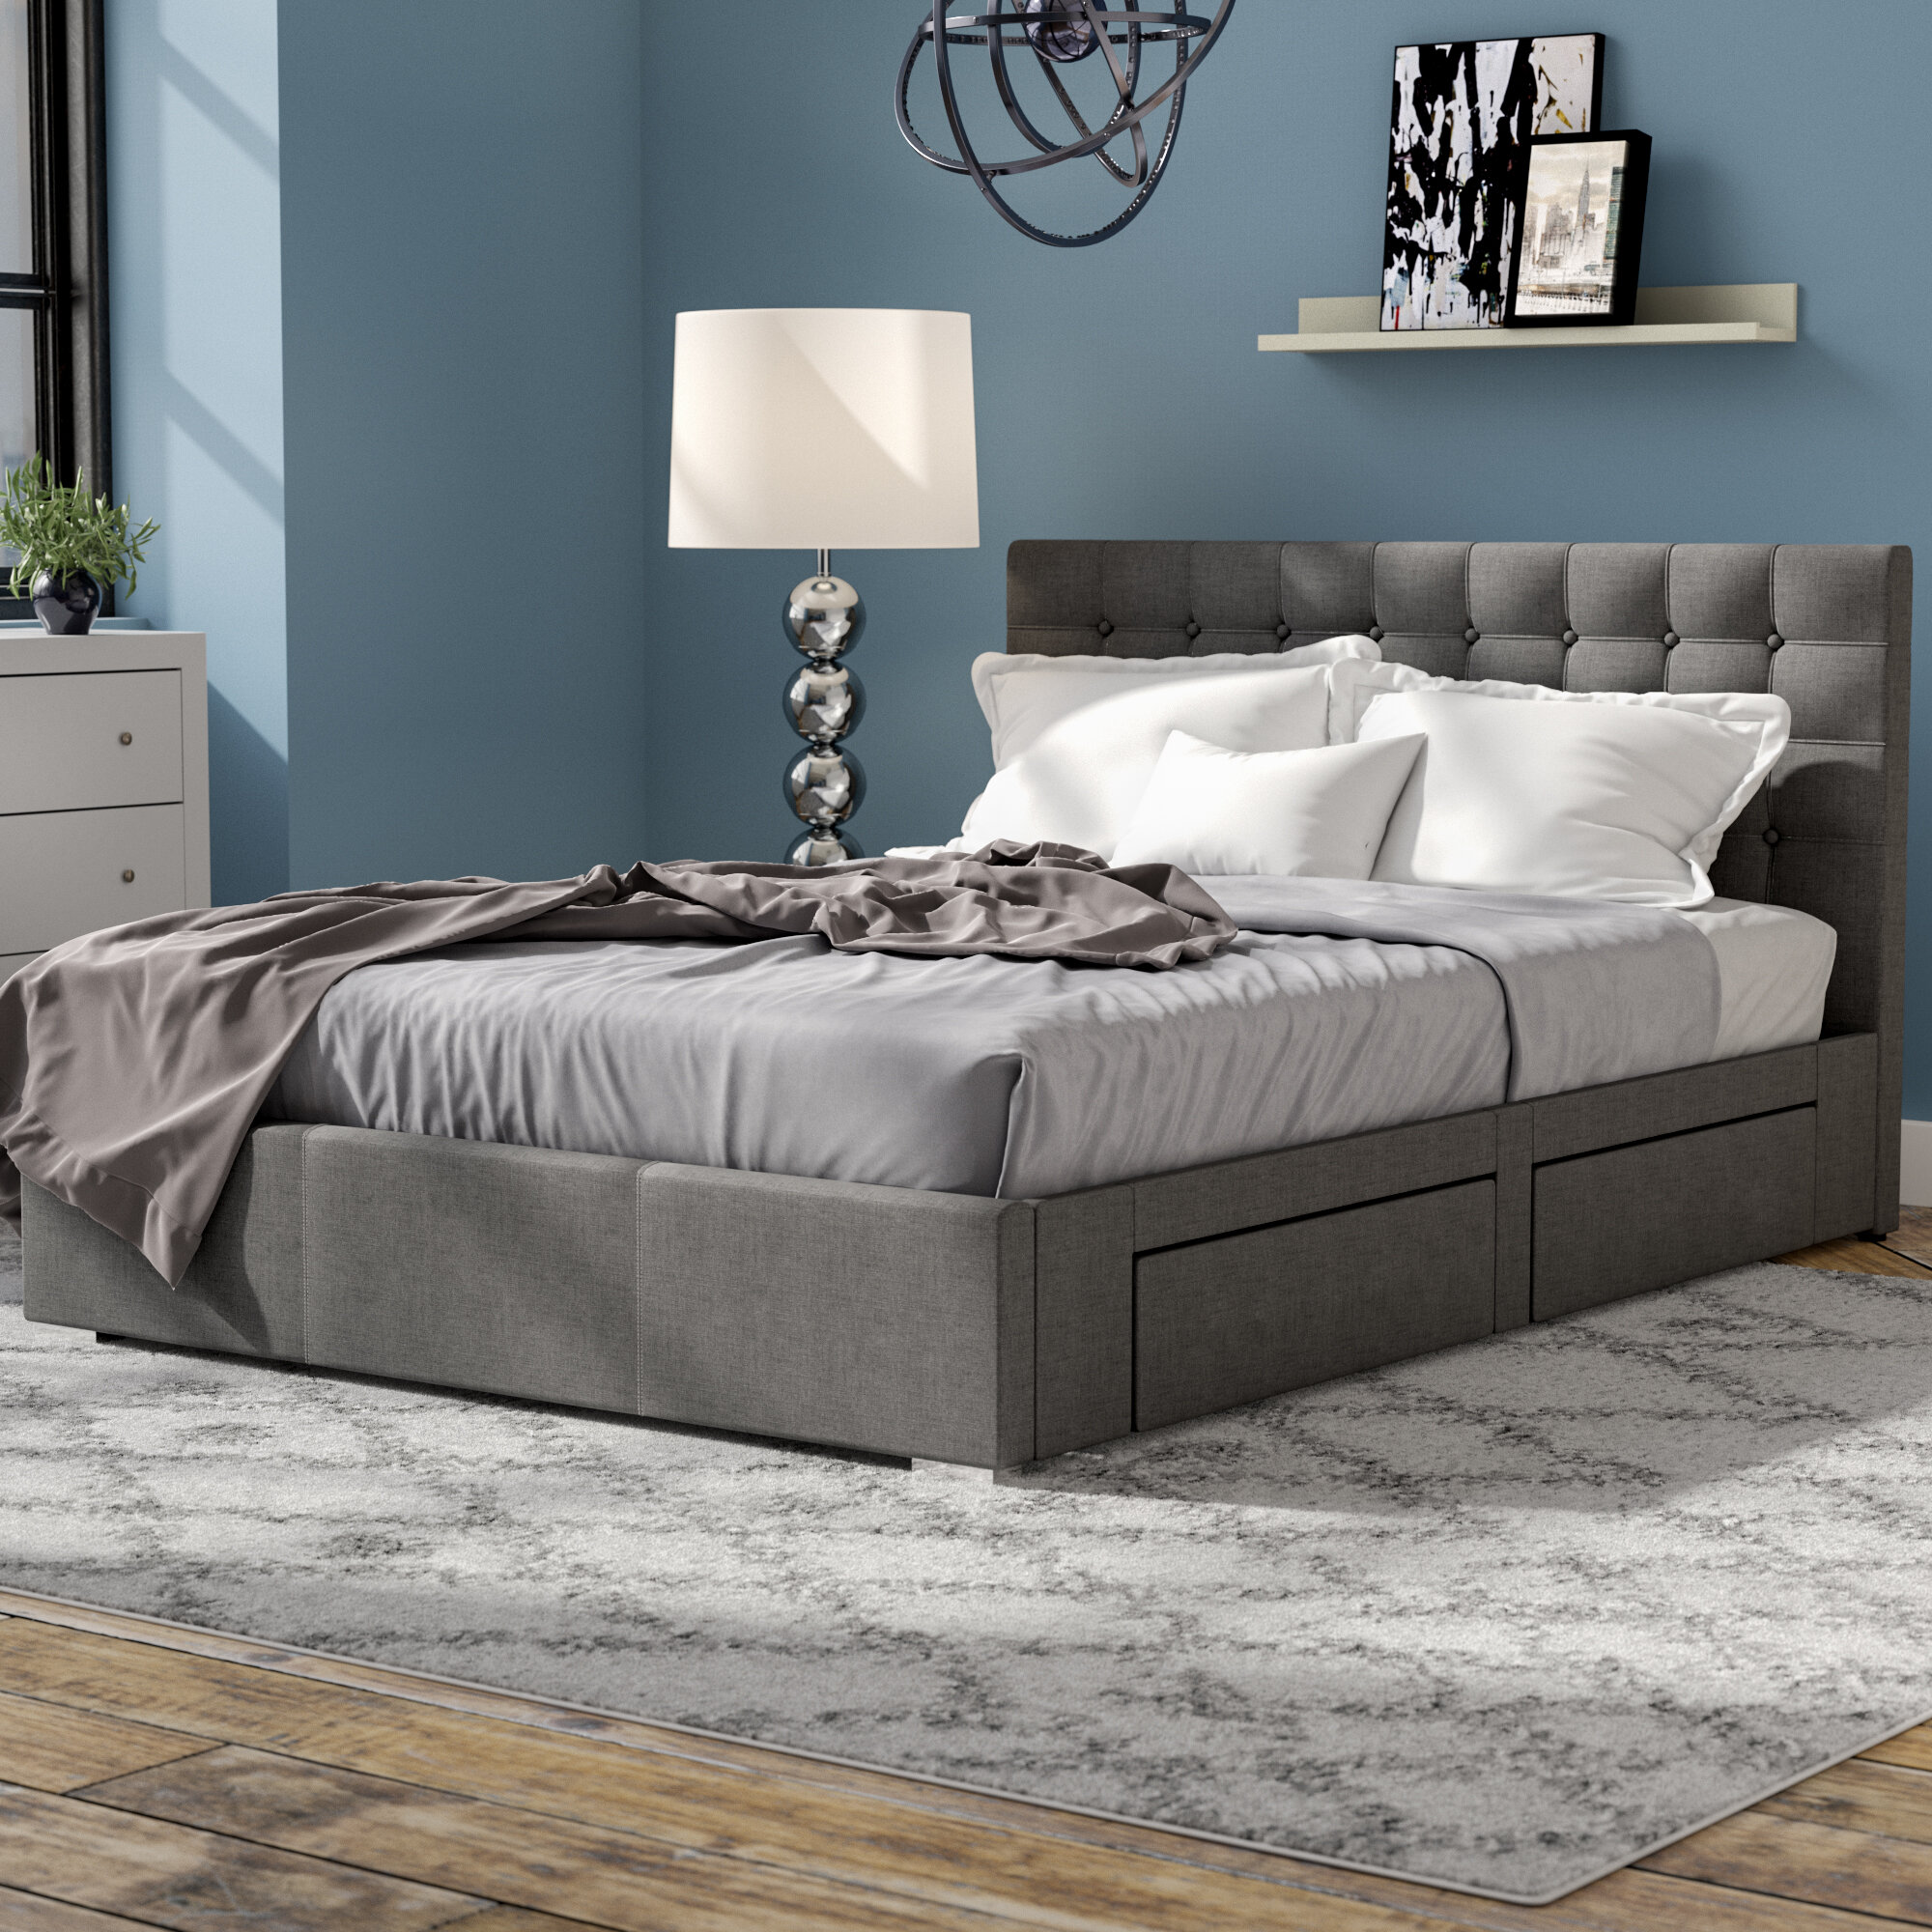 Latitude Run Myrrine Upholstered Storage Platform Bed Reviews